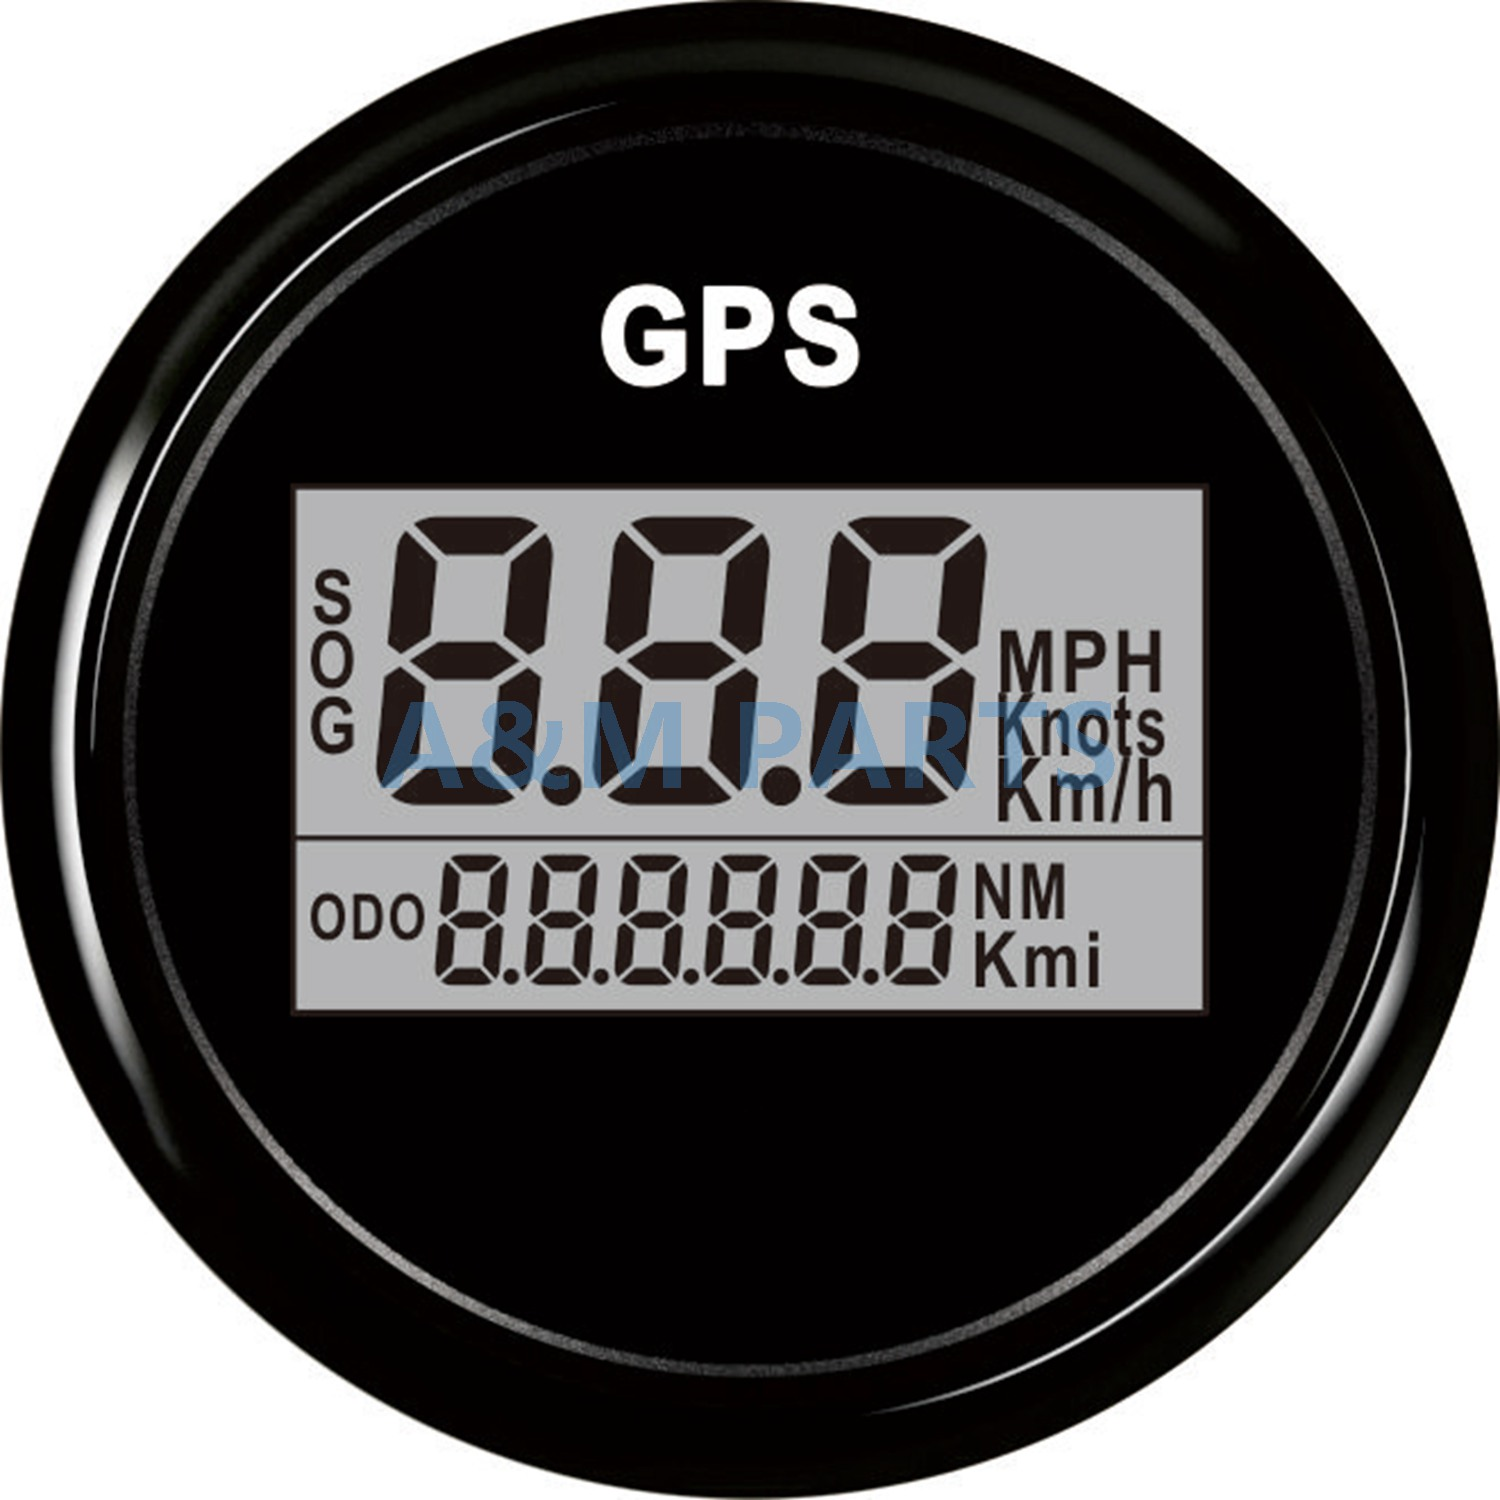 Boat Digital GPS Speedometer Marine Odometer Truck RV Car Speed Gauge GPS Antenna LCD 9-32V 52mm 52 mm universal digital gps speedometer odometer fit car boat gps speed sensor with backlight 316 l 9 32v km h adjustable